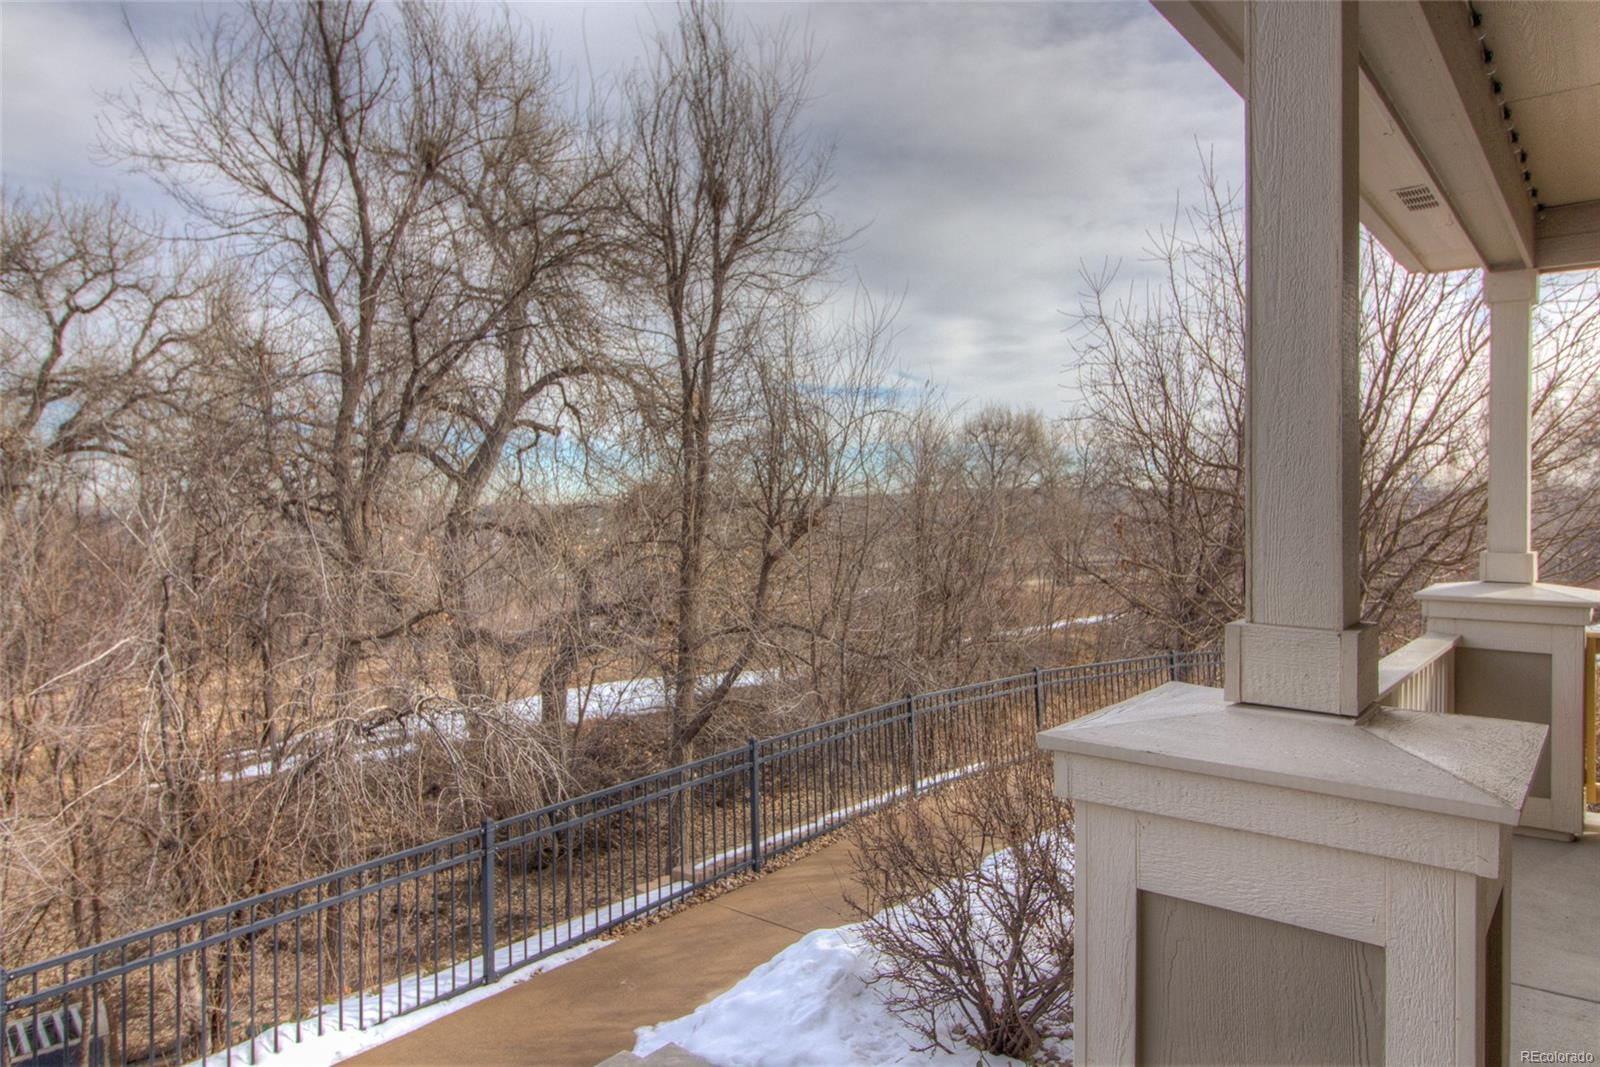 Look at this fabulous setting overlooking the Nevin/Farmers Canal. Can you imagi